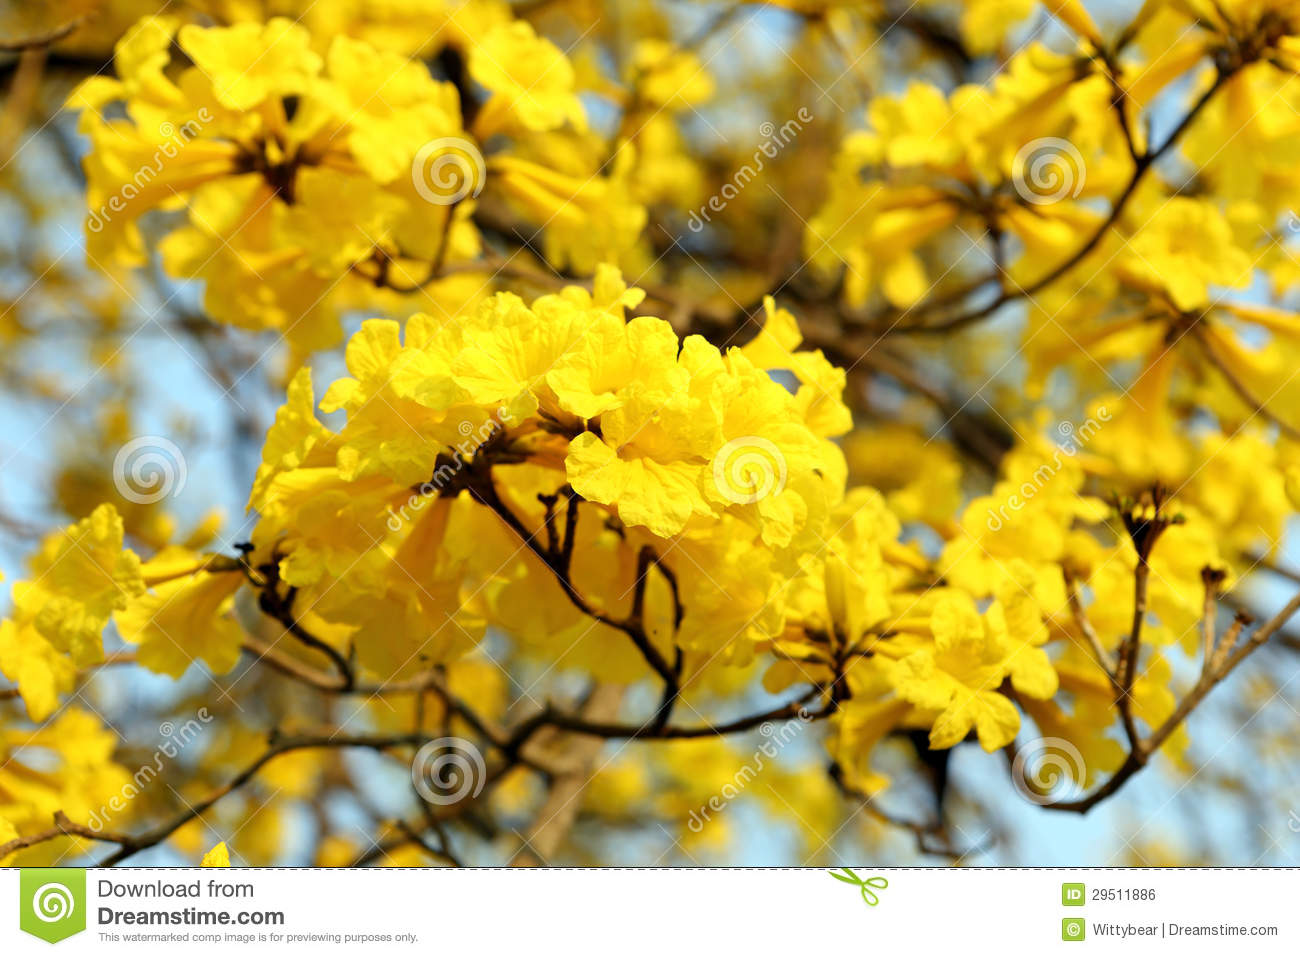 Yellow flower blossom stock photo image of design close 29511886 yellow flower blossom mightylinksfo Image collections